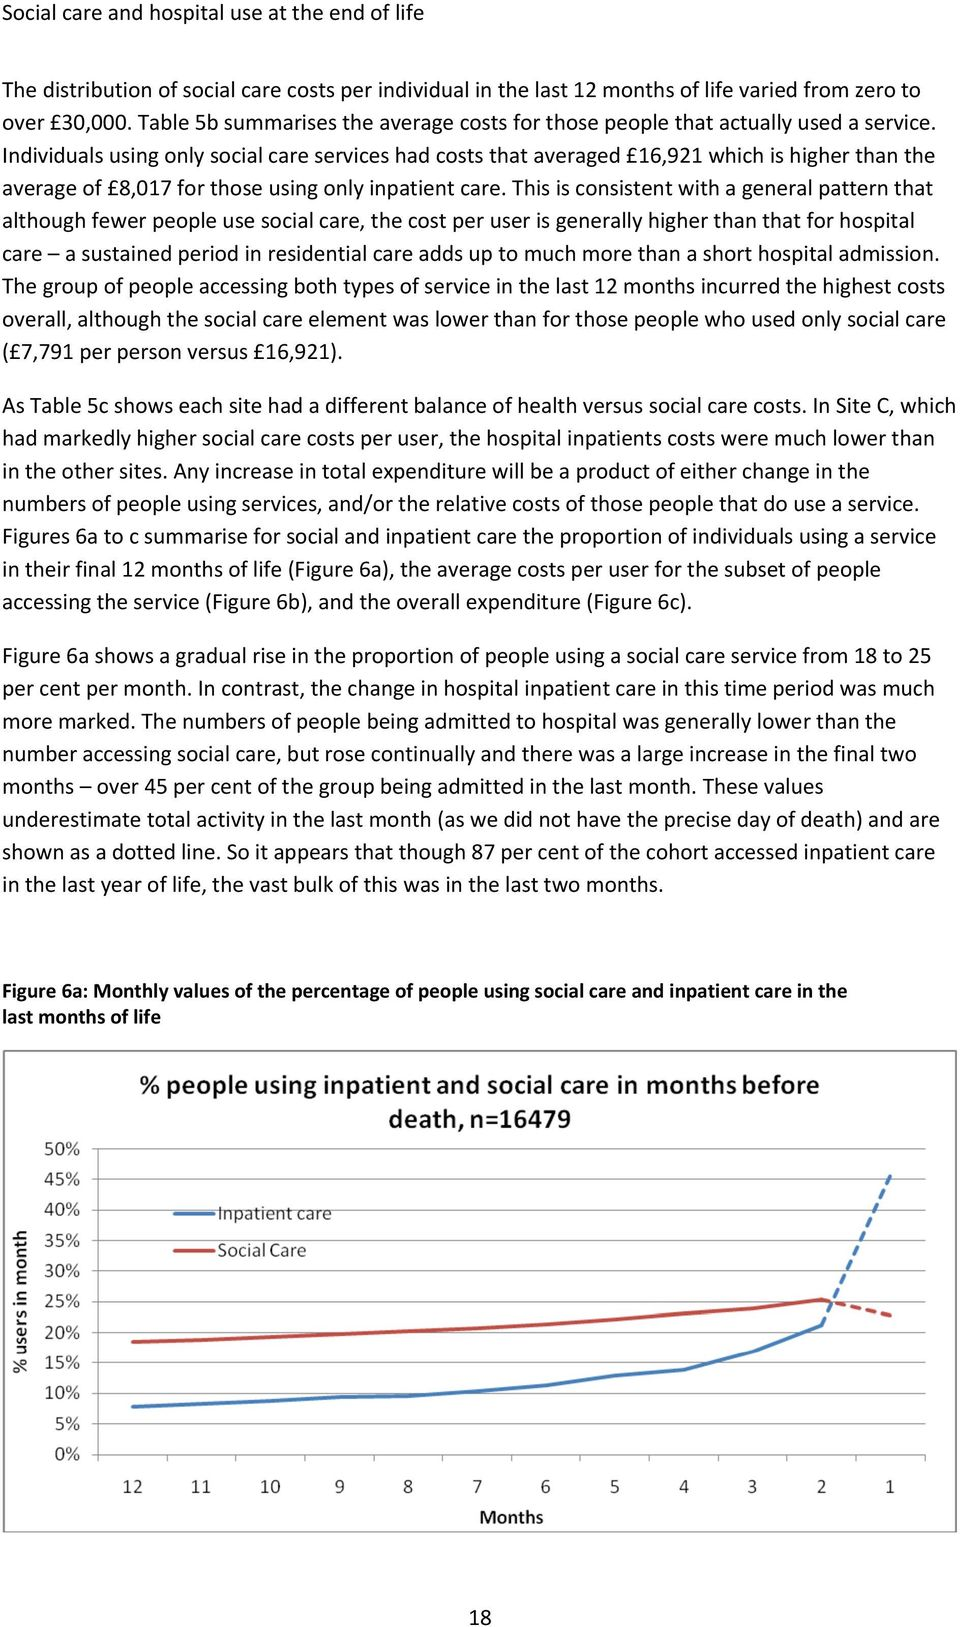 Individuals using only social care services had costs that averaged 16,921 which is higher than the average of 8,017 for those using only inpatient care.